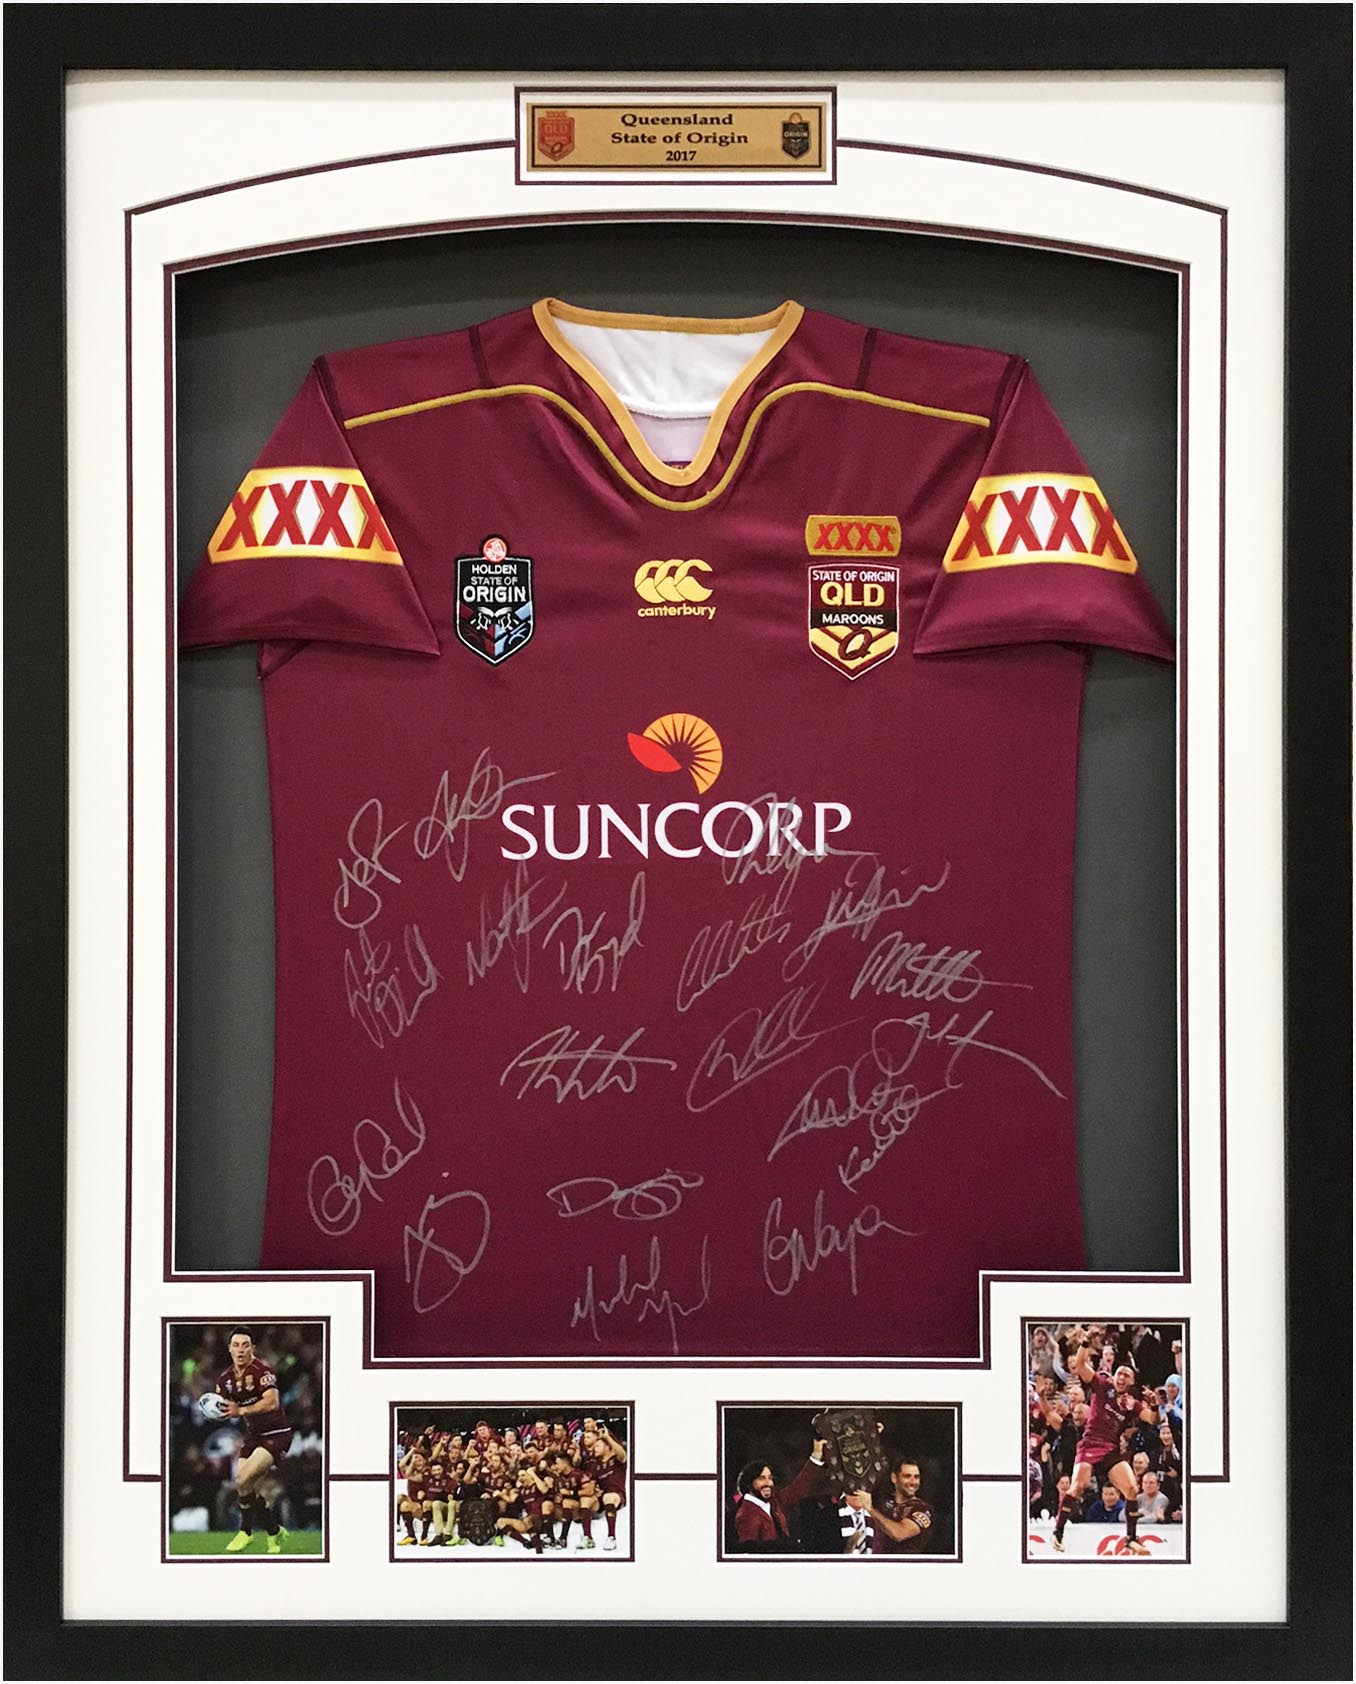 Queensland State of Origin 2017 Official Team and Coach Hand Signed Jersey - Thurston, Cronk, Smith